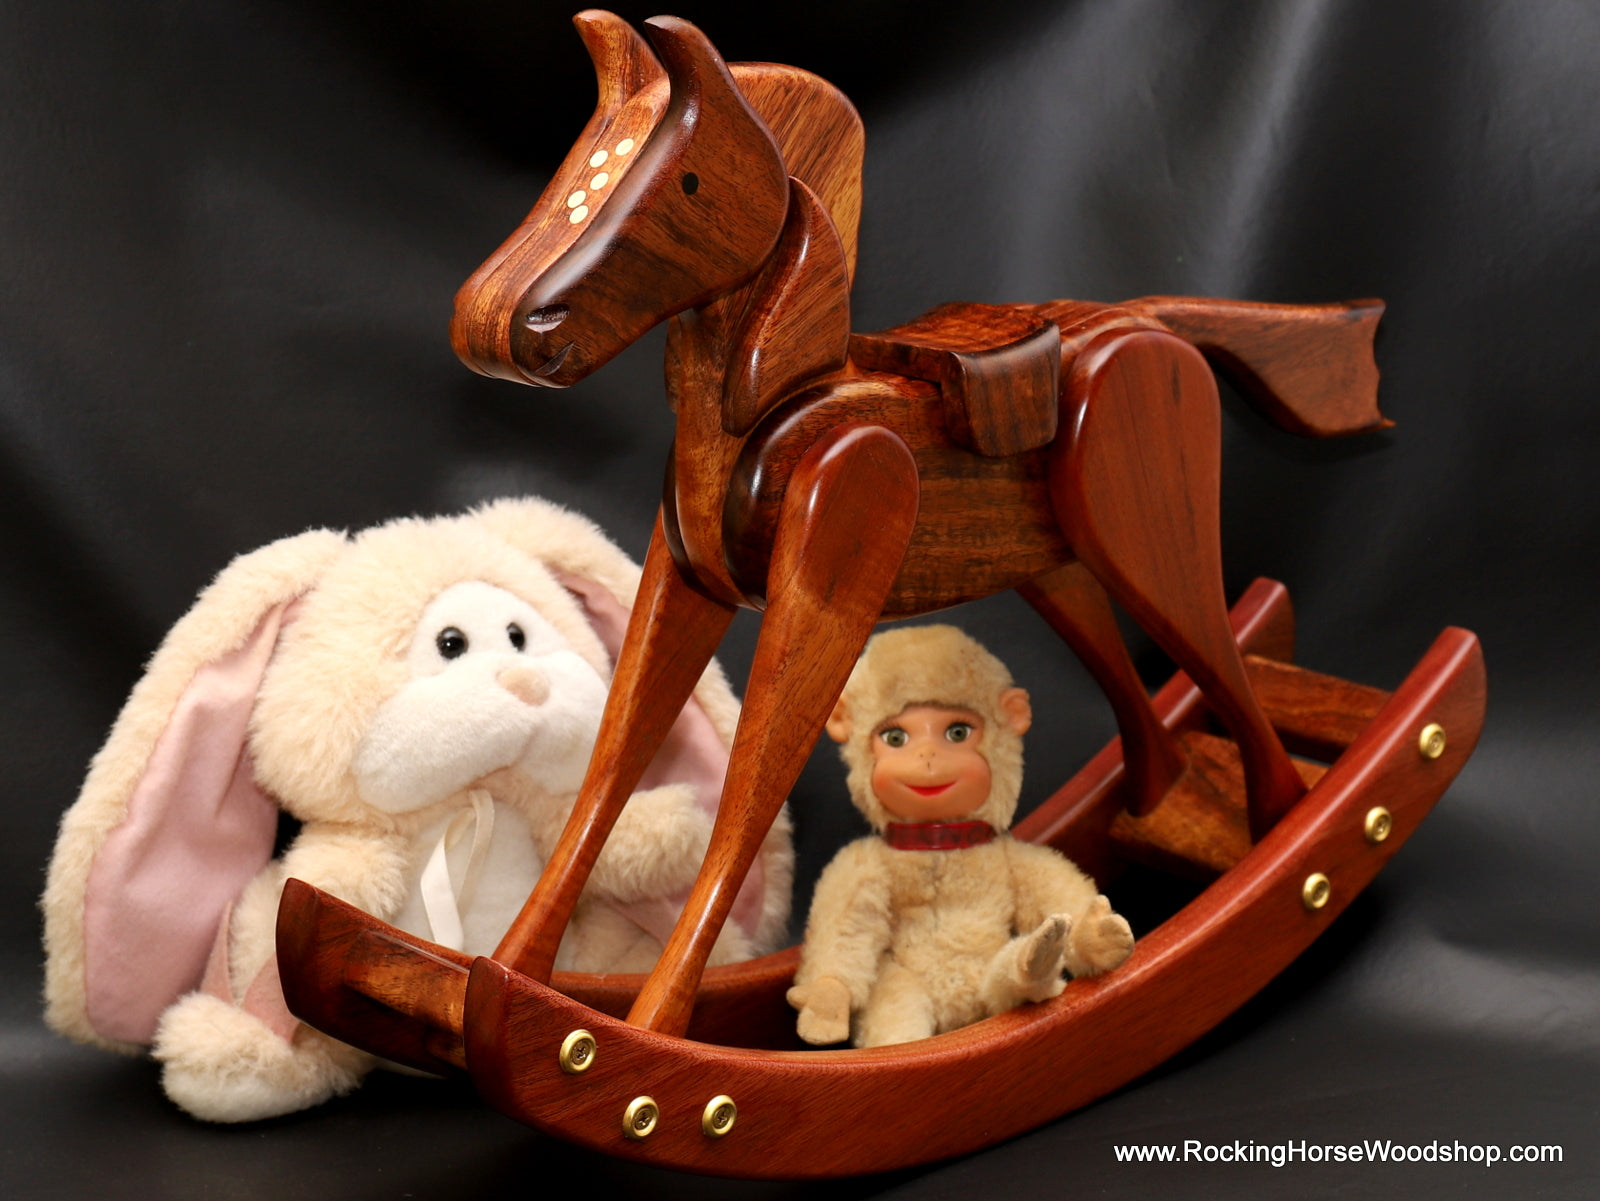 Tabletop handcrafted rocking horse for nursery display by Salter Fine Cutlery